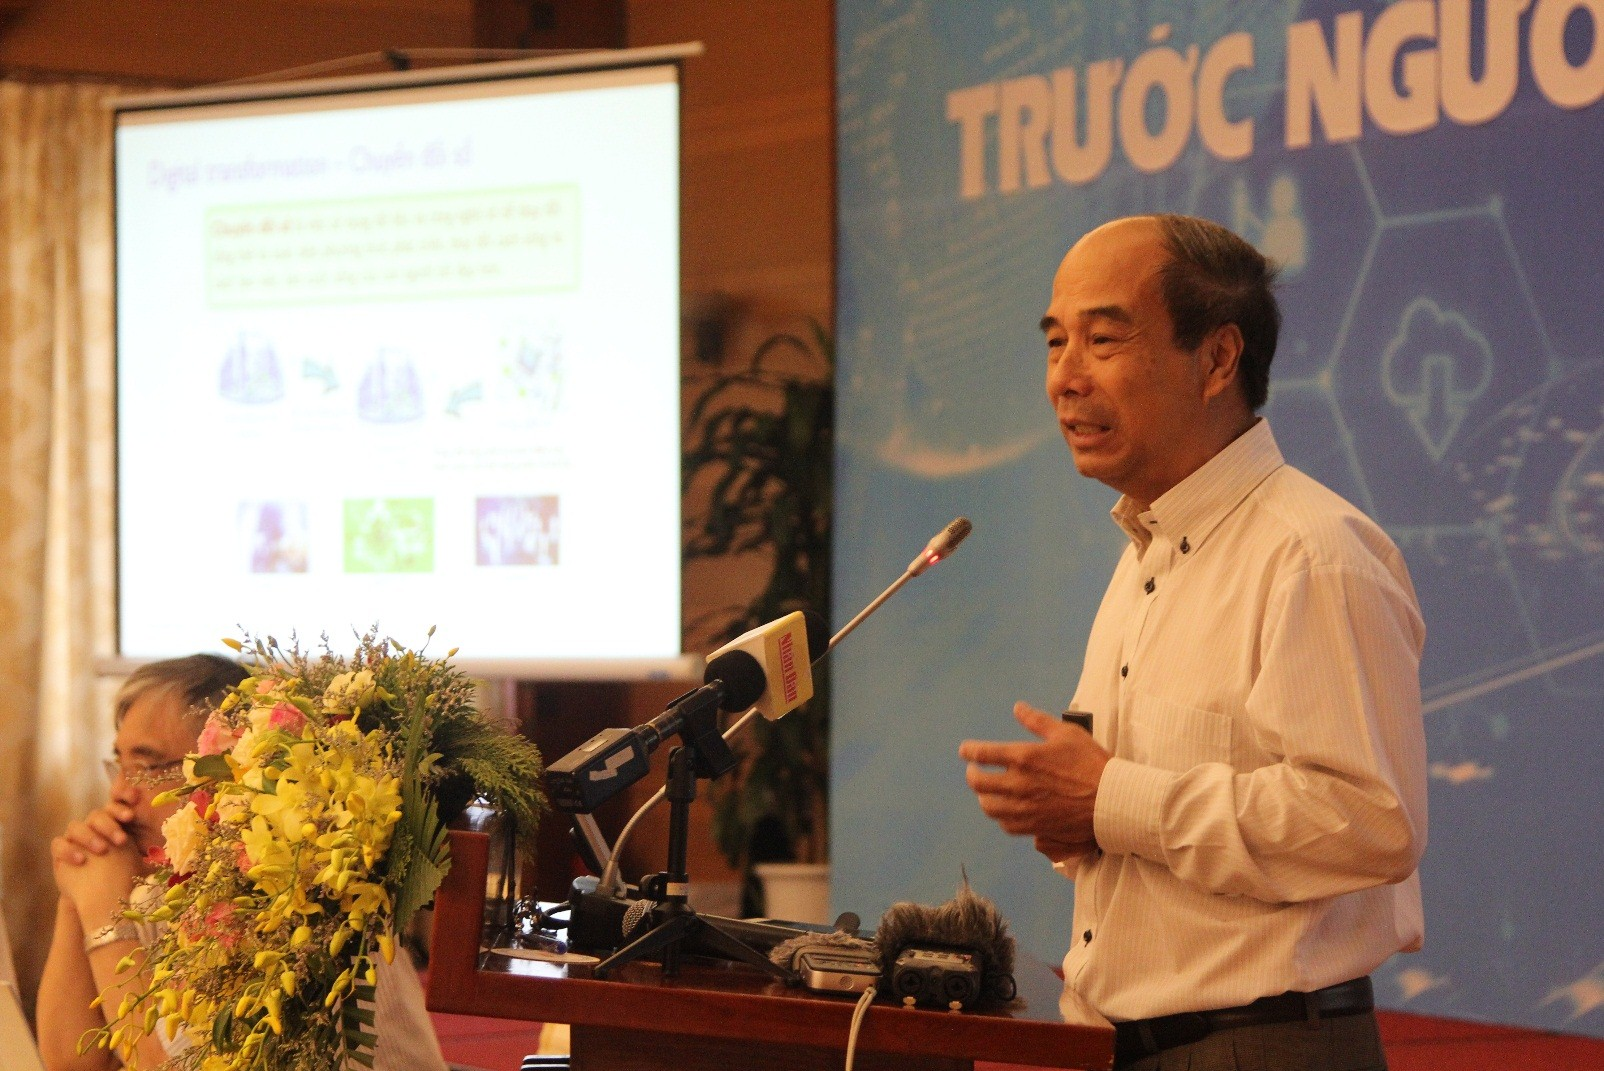 Prof. Ho Tu Bao presented the presentation at the Conference